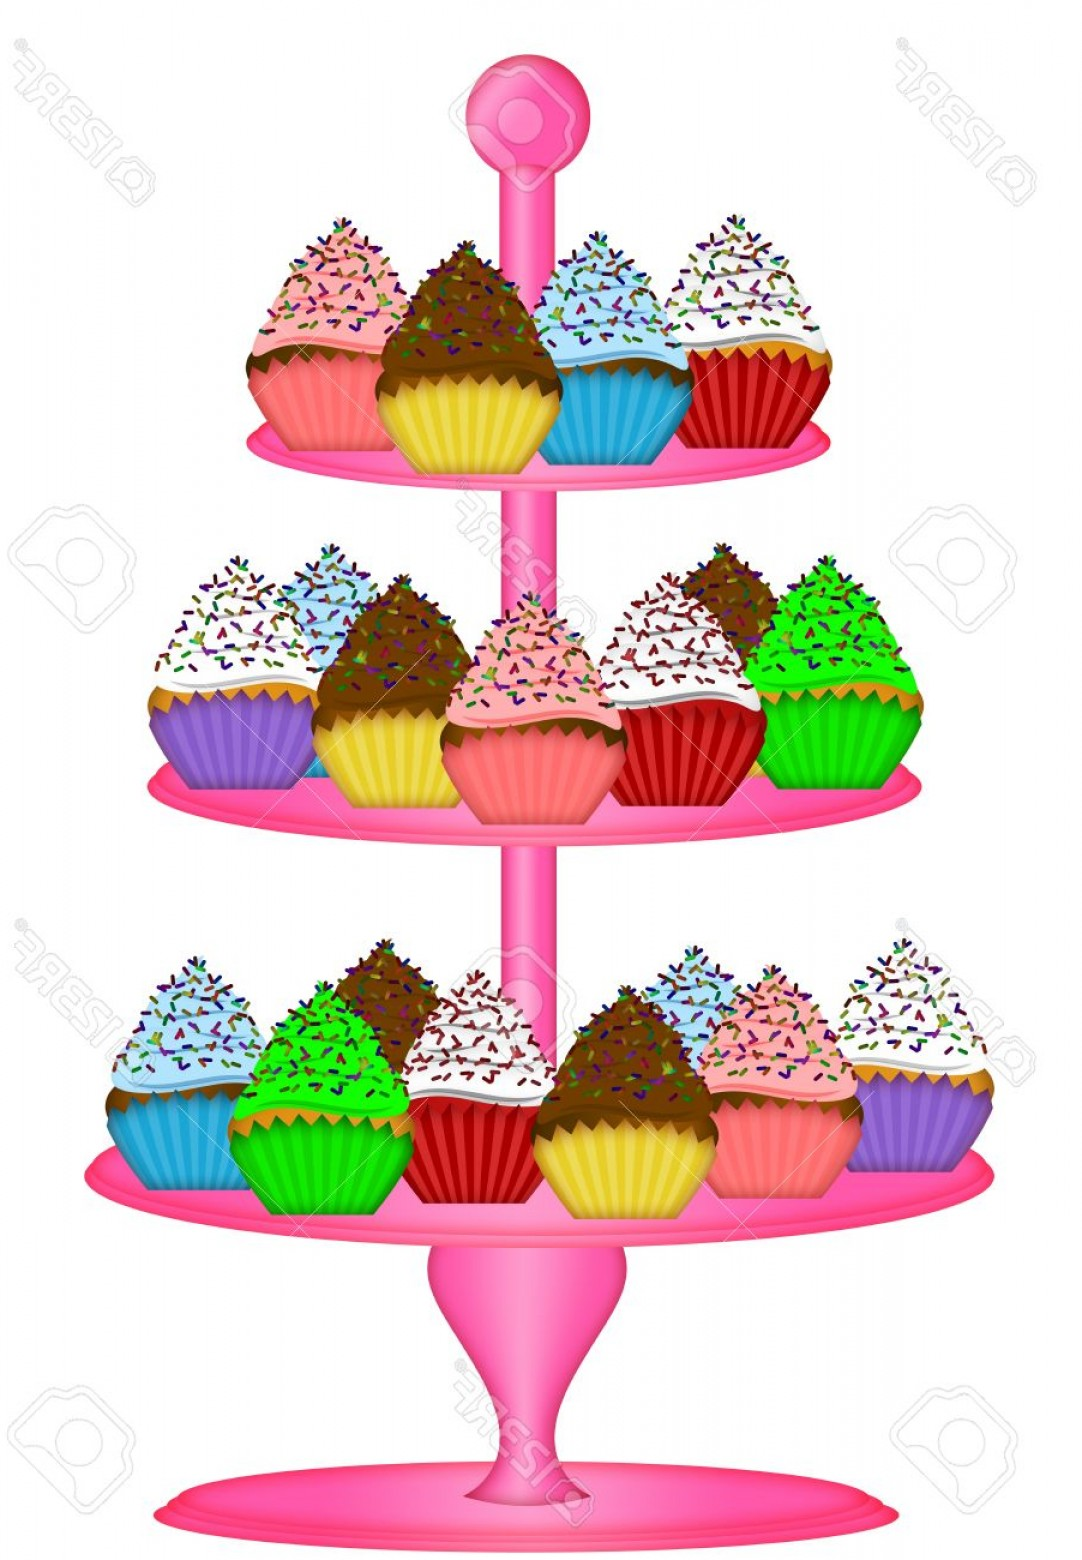 Vector 3 Tier Tray: Photocupcakes On Pink Three Tier Cake Stand Illustration Isolated On White Background